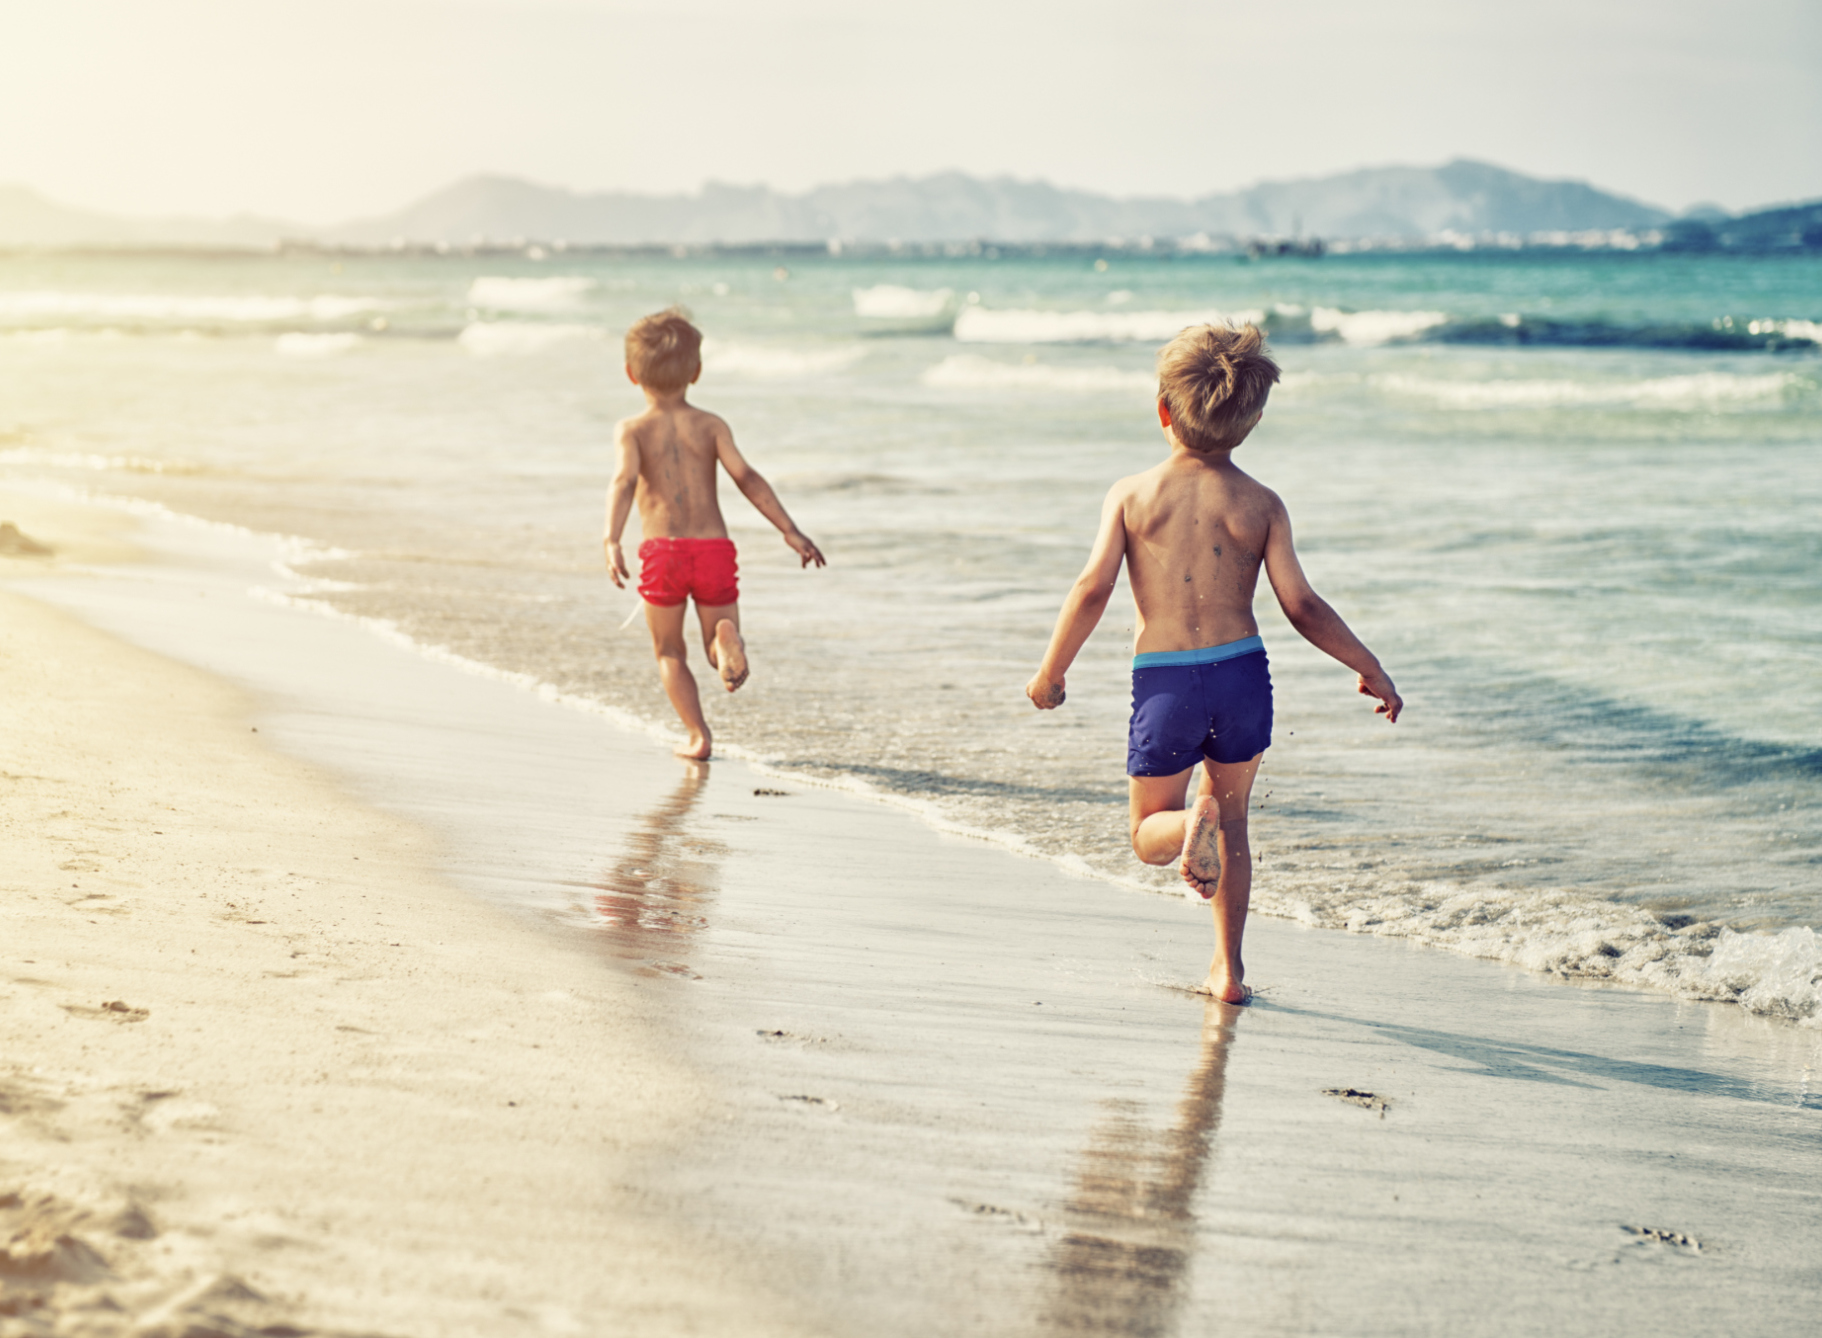 Parents arrested for letting kids play on the beach alone